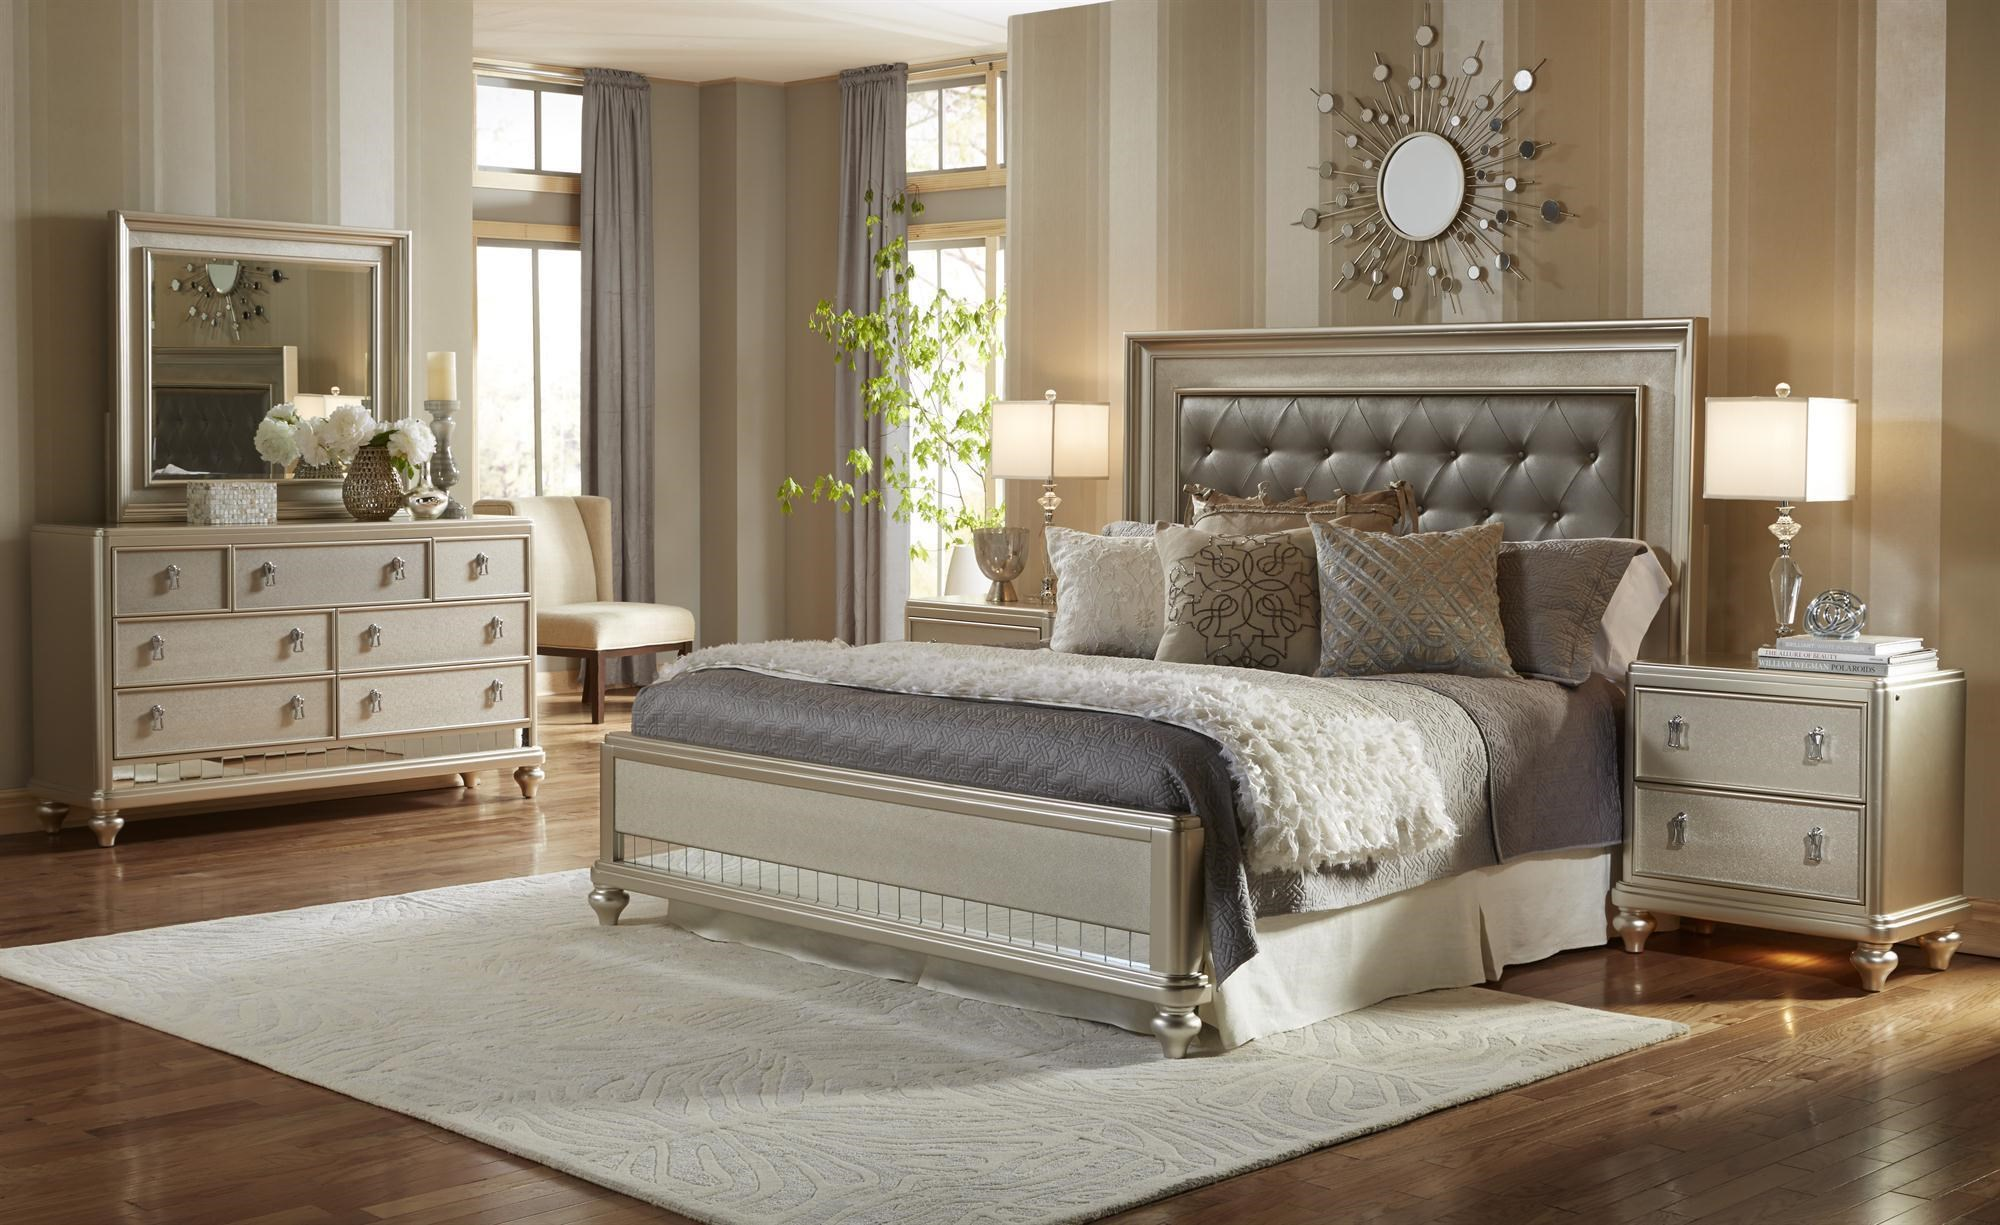 Samuel Lawrence Diva Queen 6 Piece Bedroom Group   Royal Furniture    Bedroom Groups